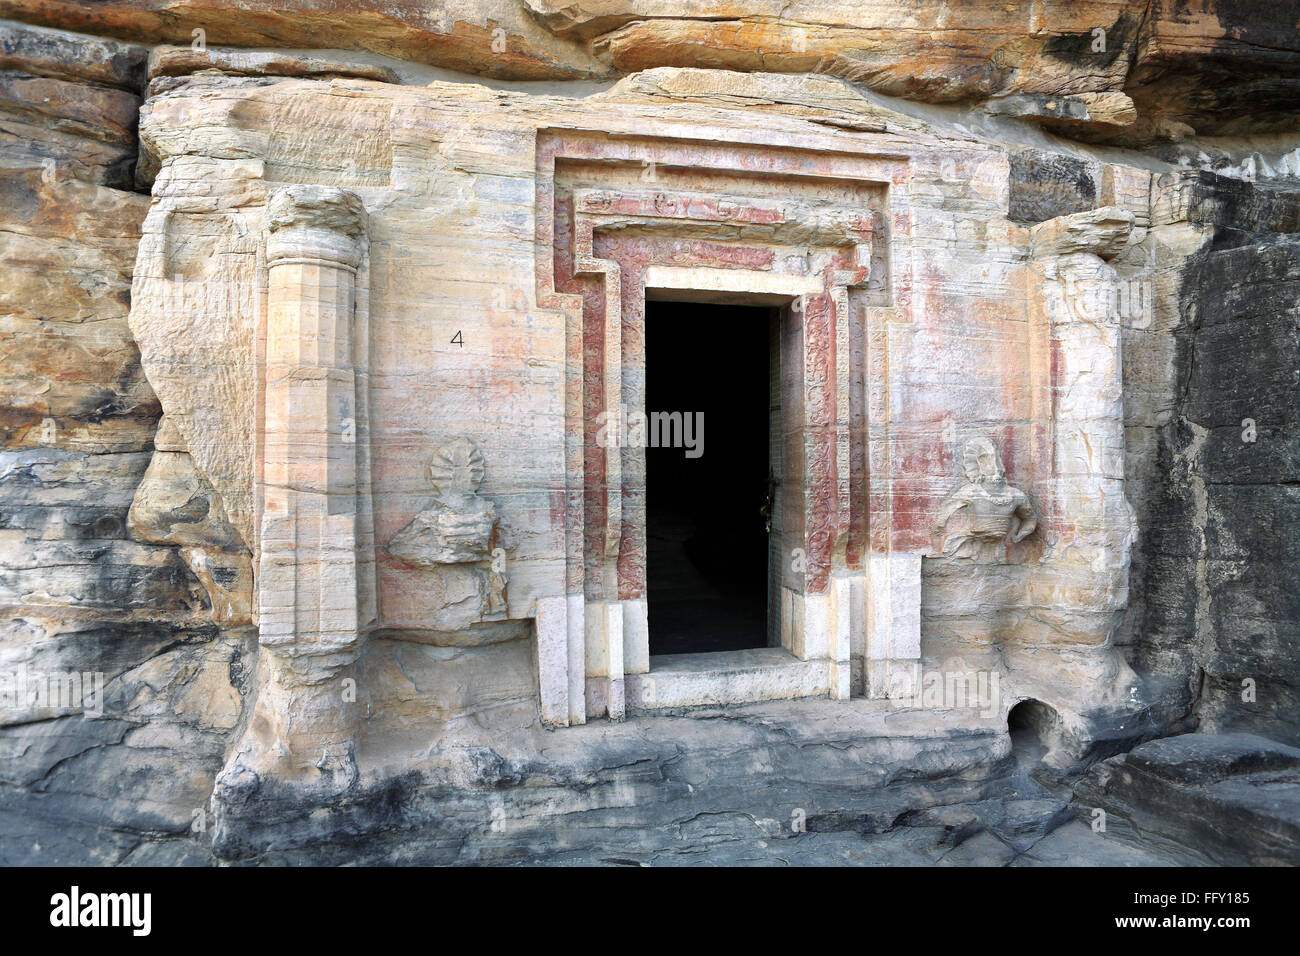 Charmant Cave Cut Into Sandstone Vidisha Gupta Shrines No 4 Showing Door Frame And  Columnad Figures Udaygiri